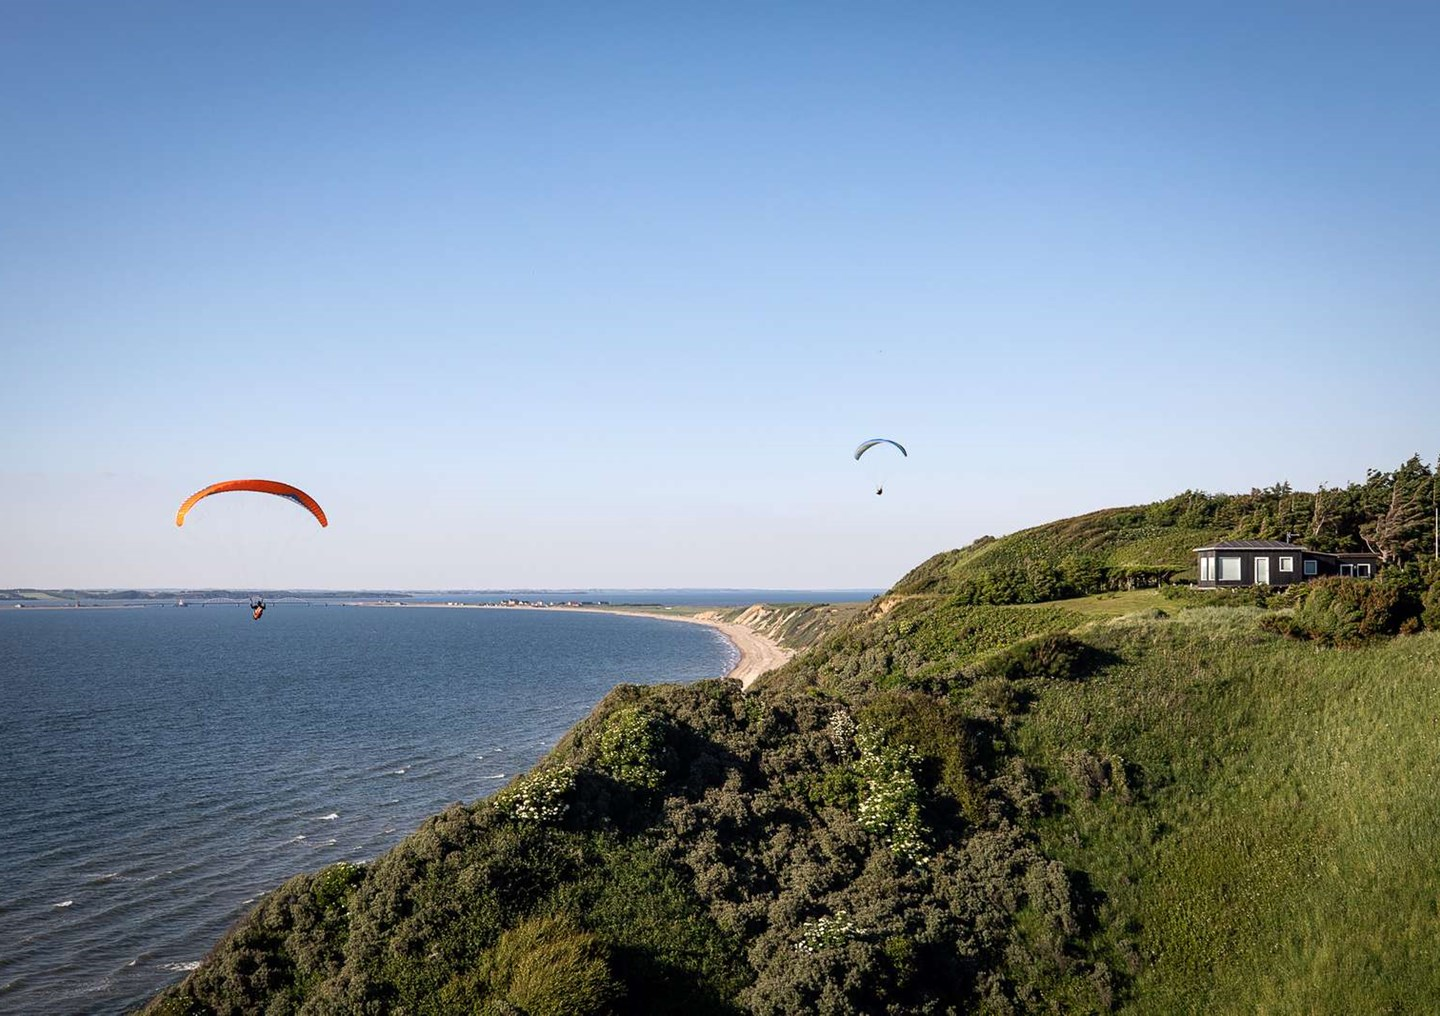 Paragliding ved Toftum Bjerge